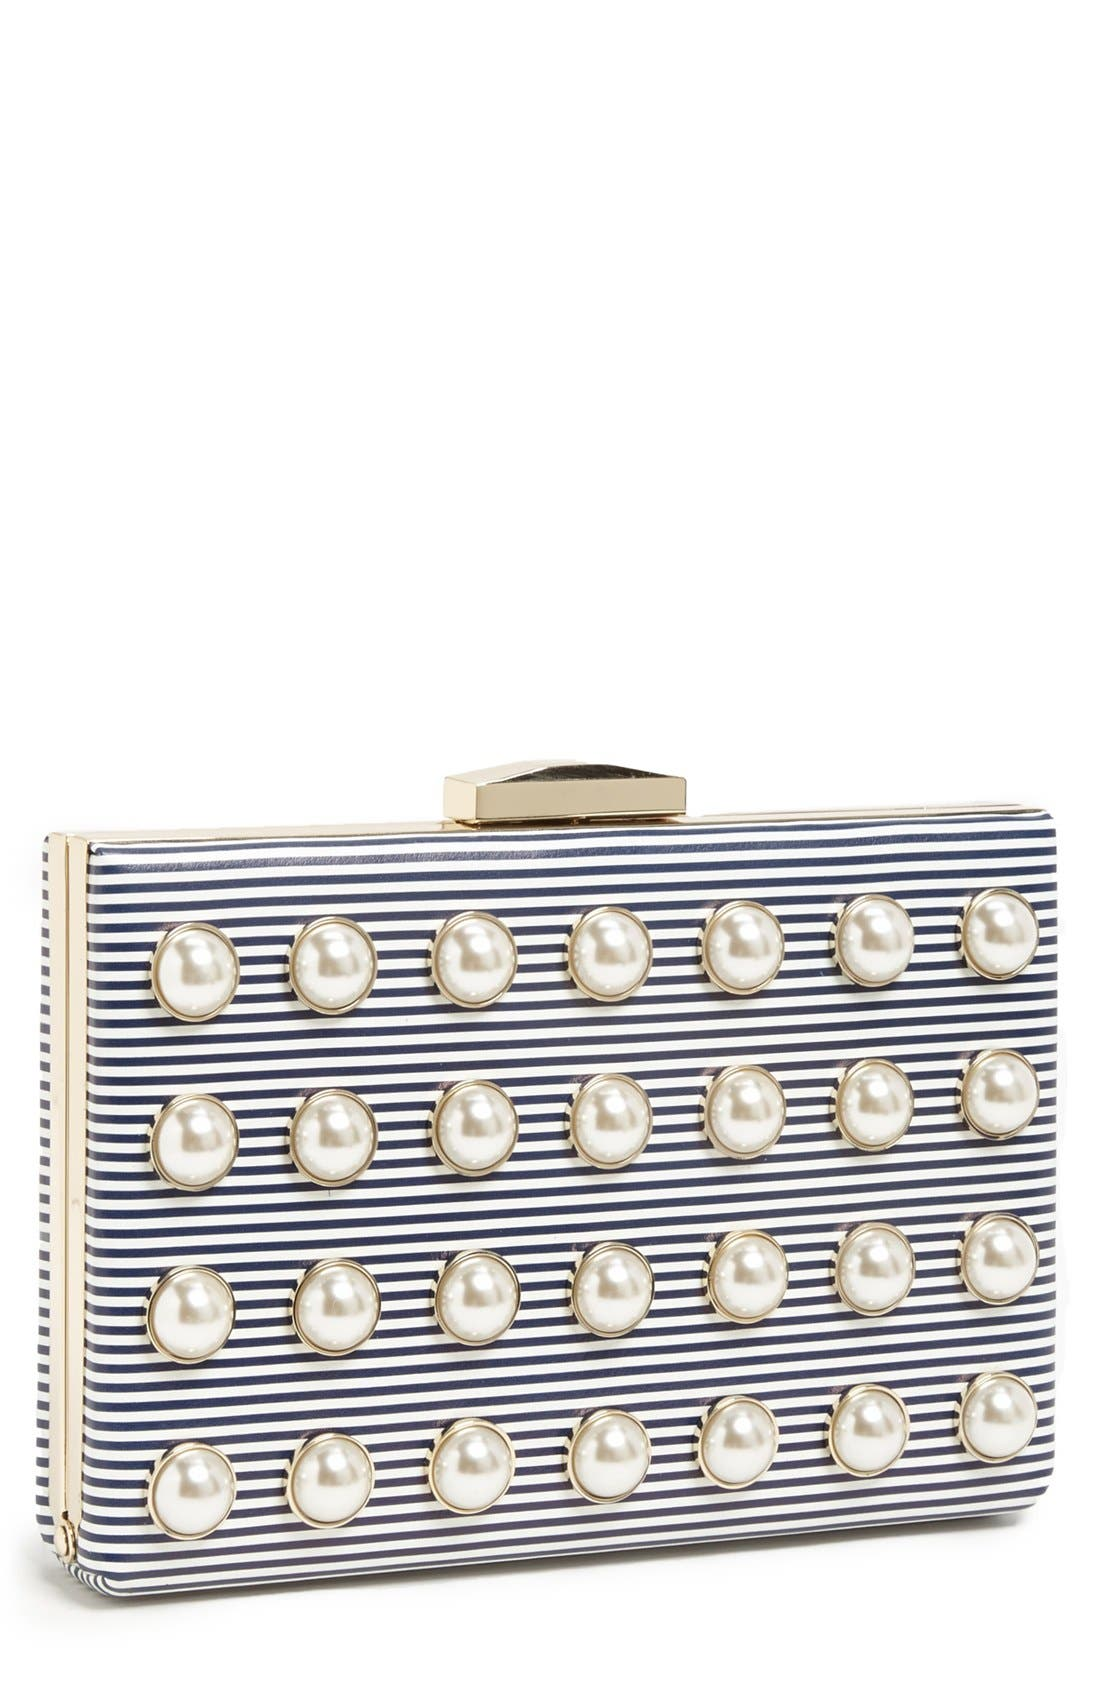 Main Image - kate spade new york 'georgica road - emanuelle' clutch